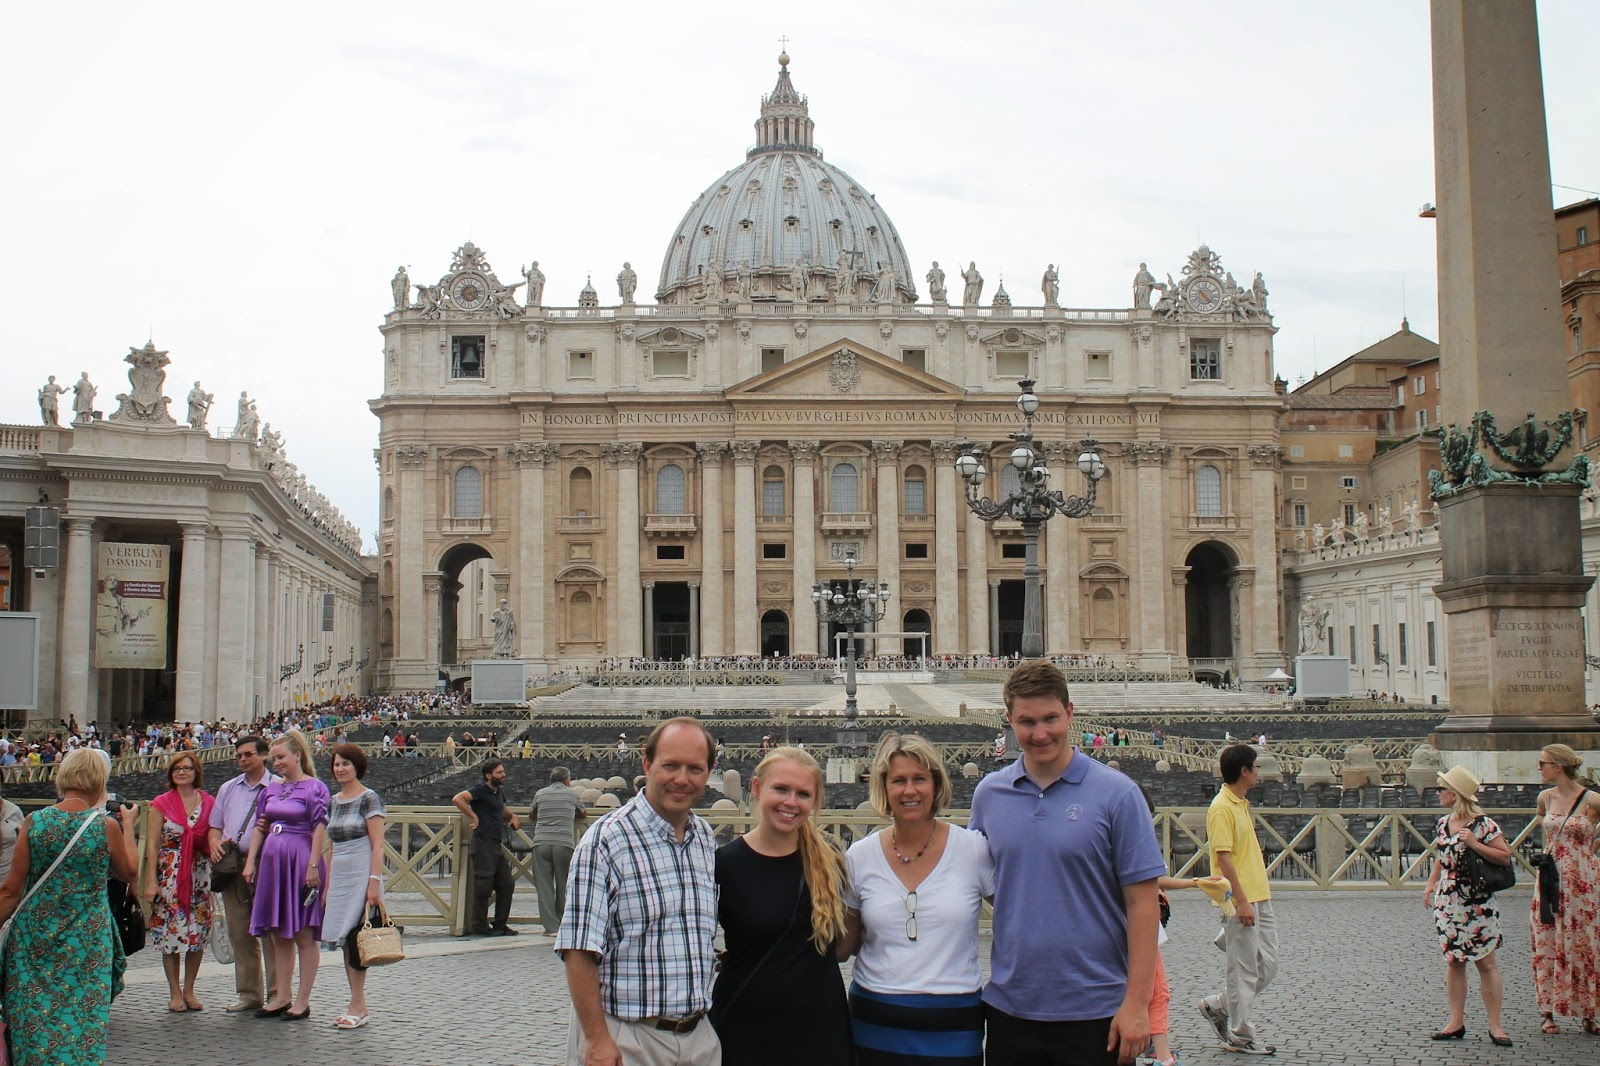 Winey Family in front of St. Peter's Basilica